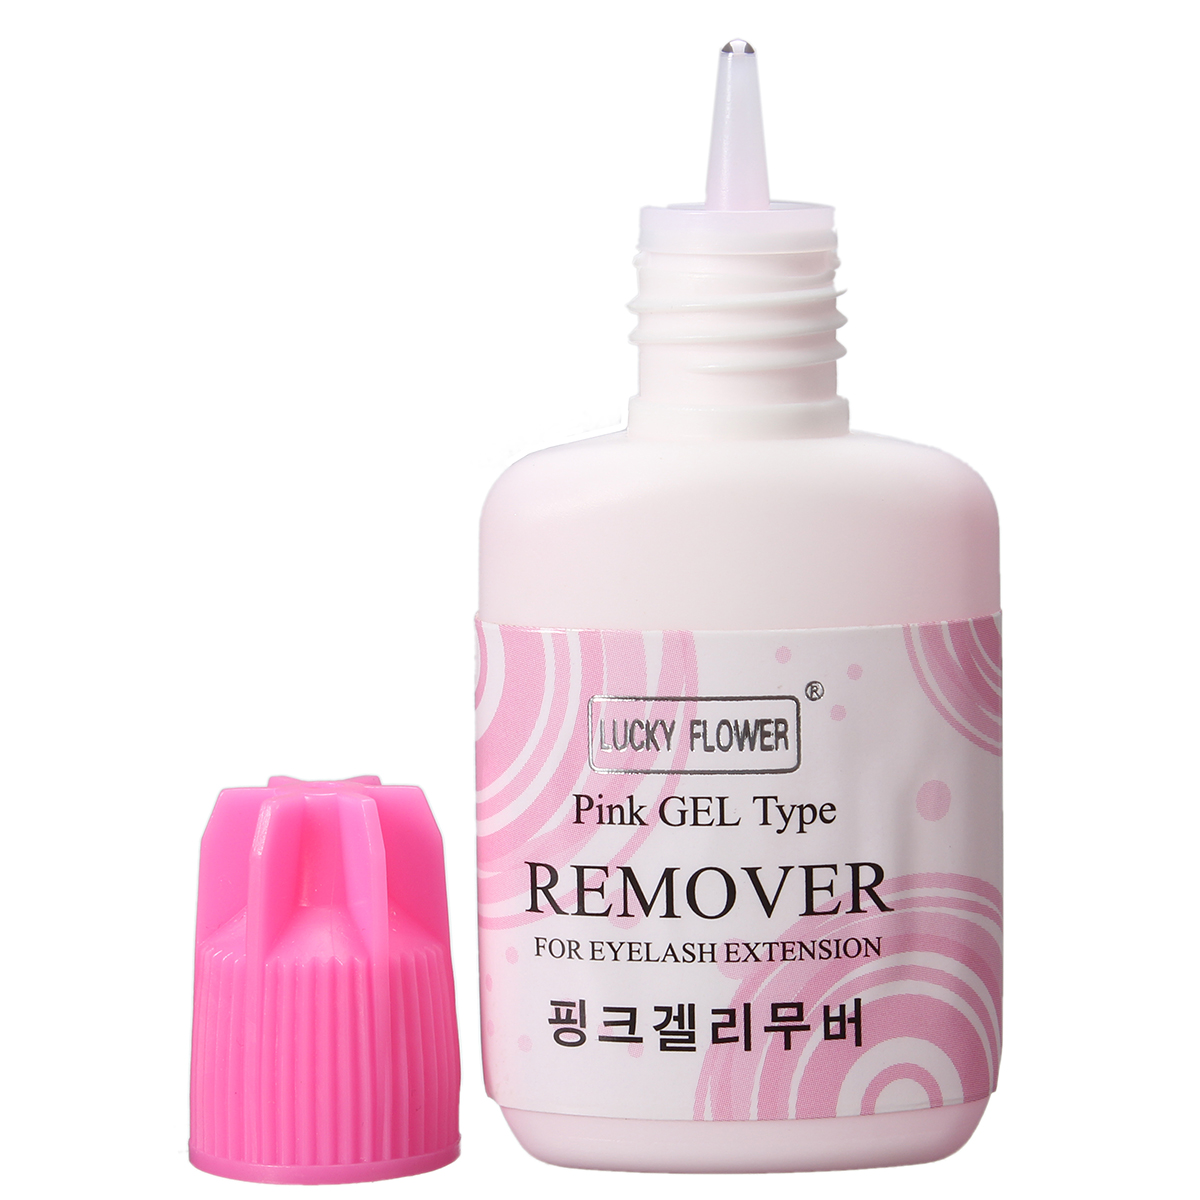 15g Professional Eyelash Eyebrow Extension Glue Remover Gel Beauty Salon Makeup